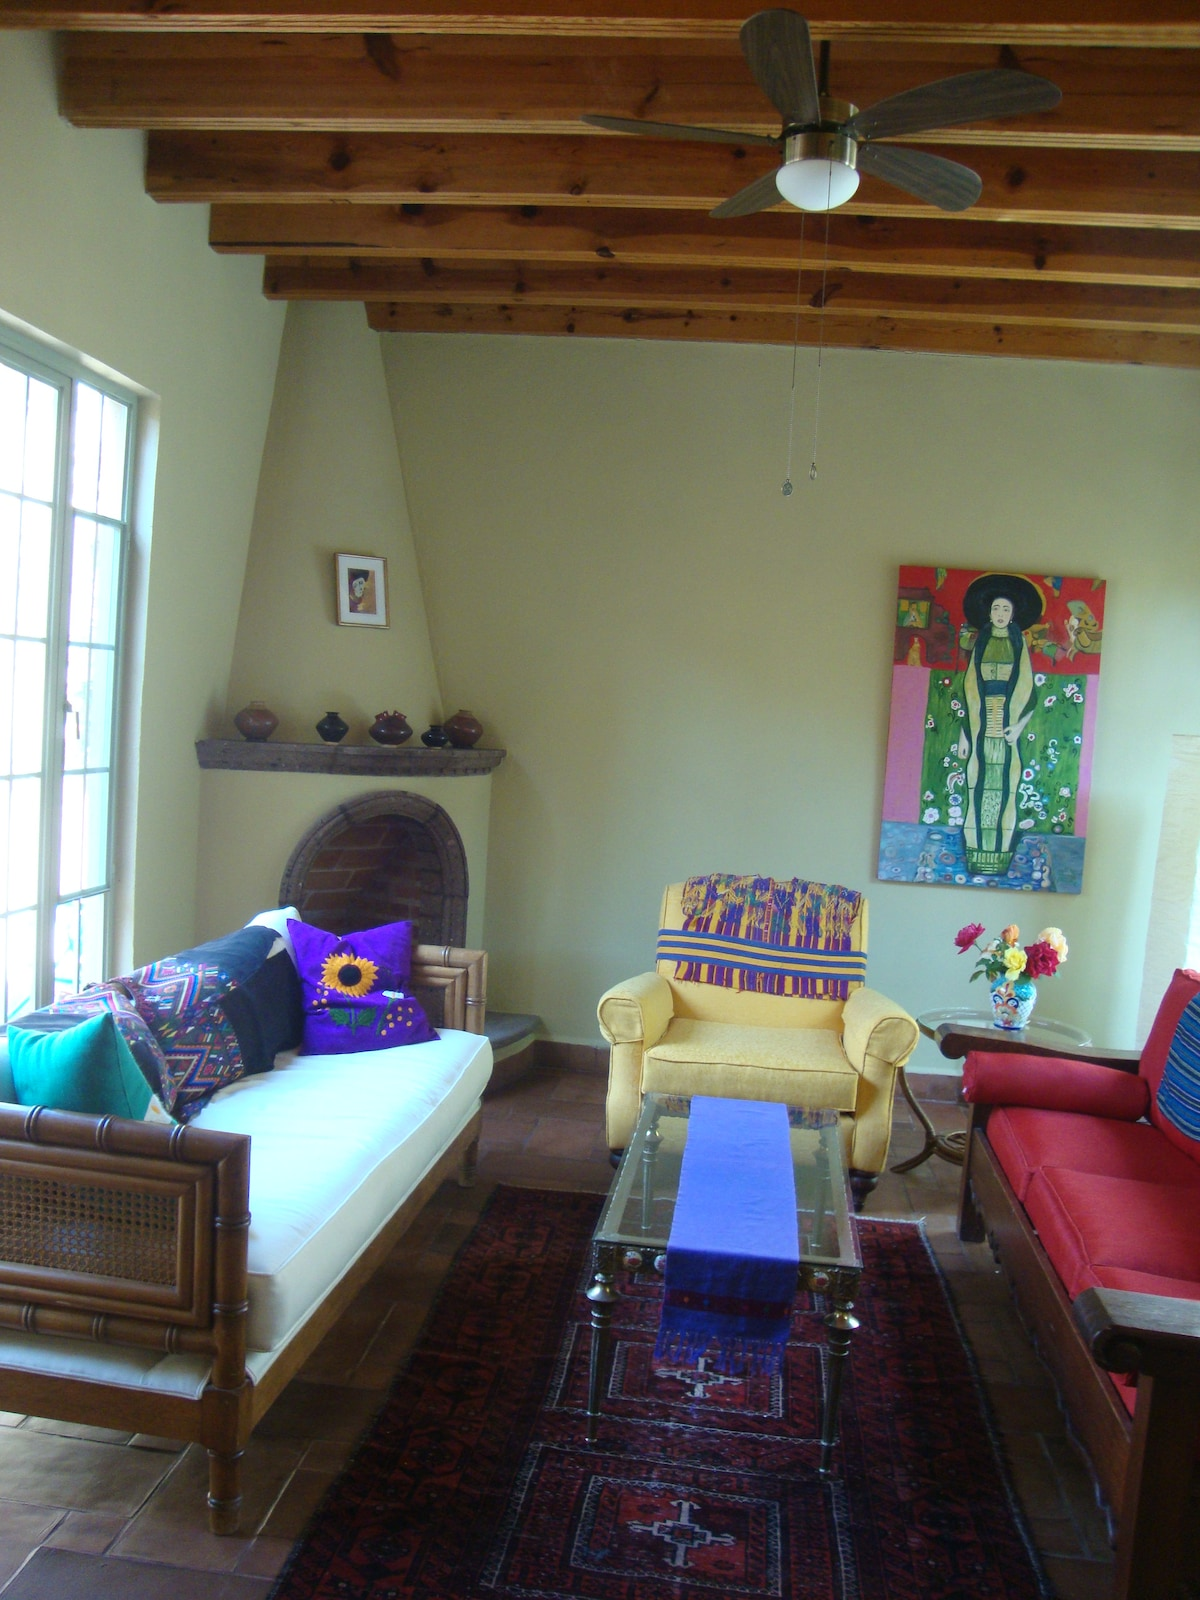 Mexican fireplace and comfortable furnishings in the 'sala' or living room.  San Miguel de Allende Home.